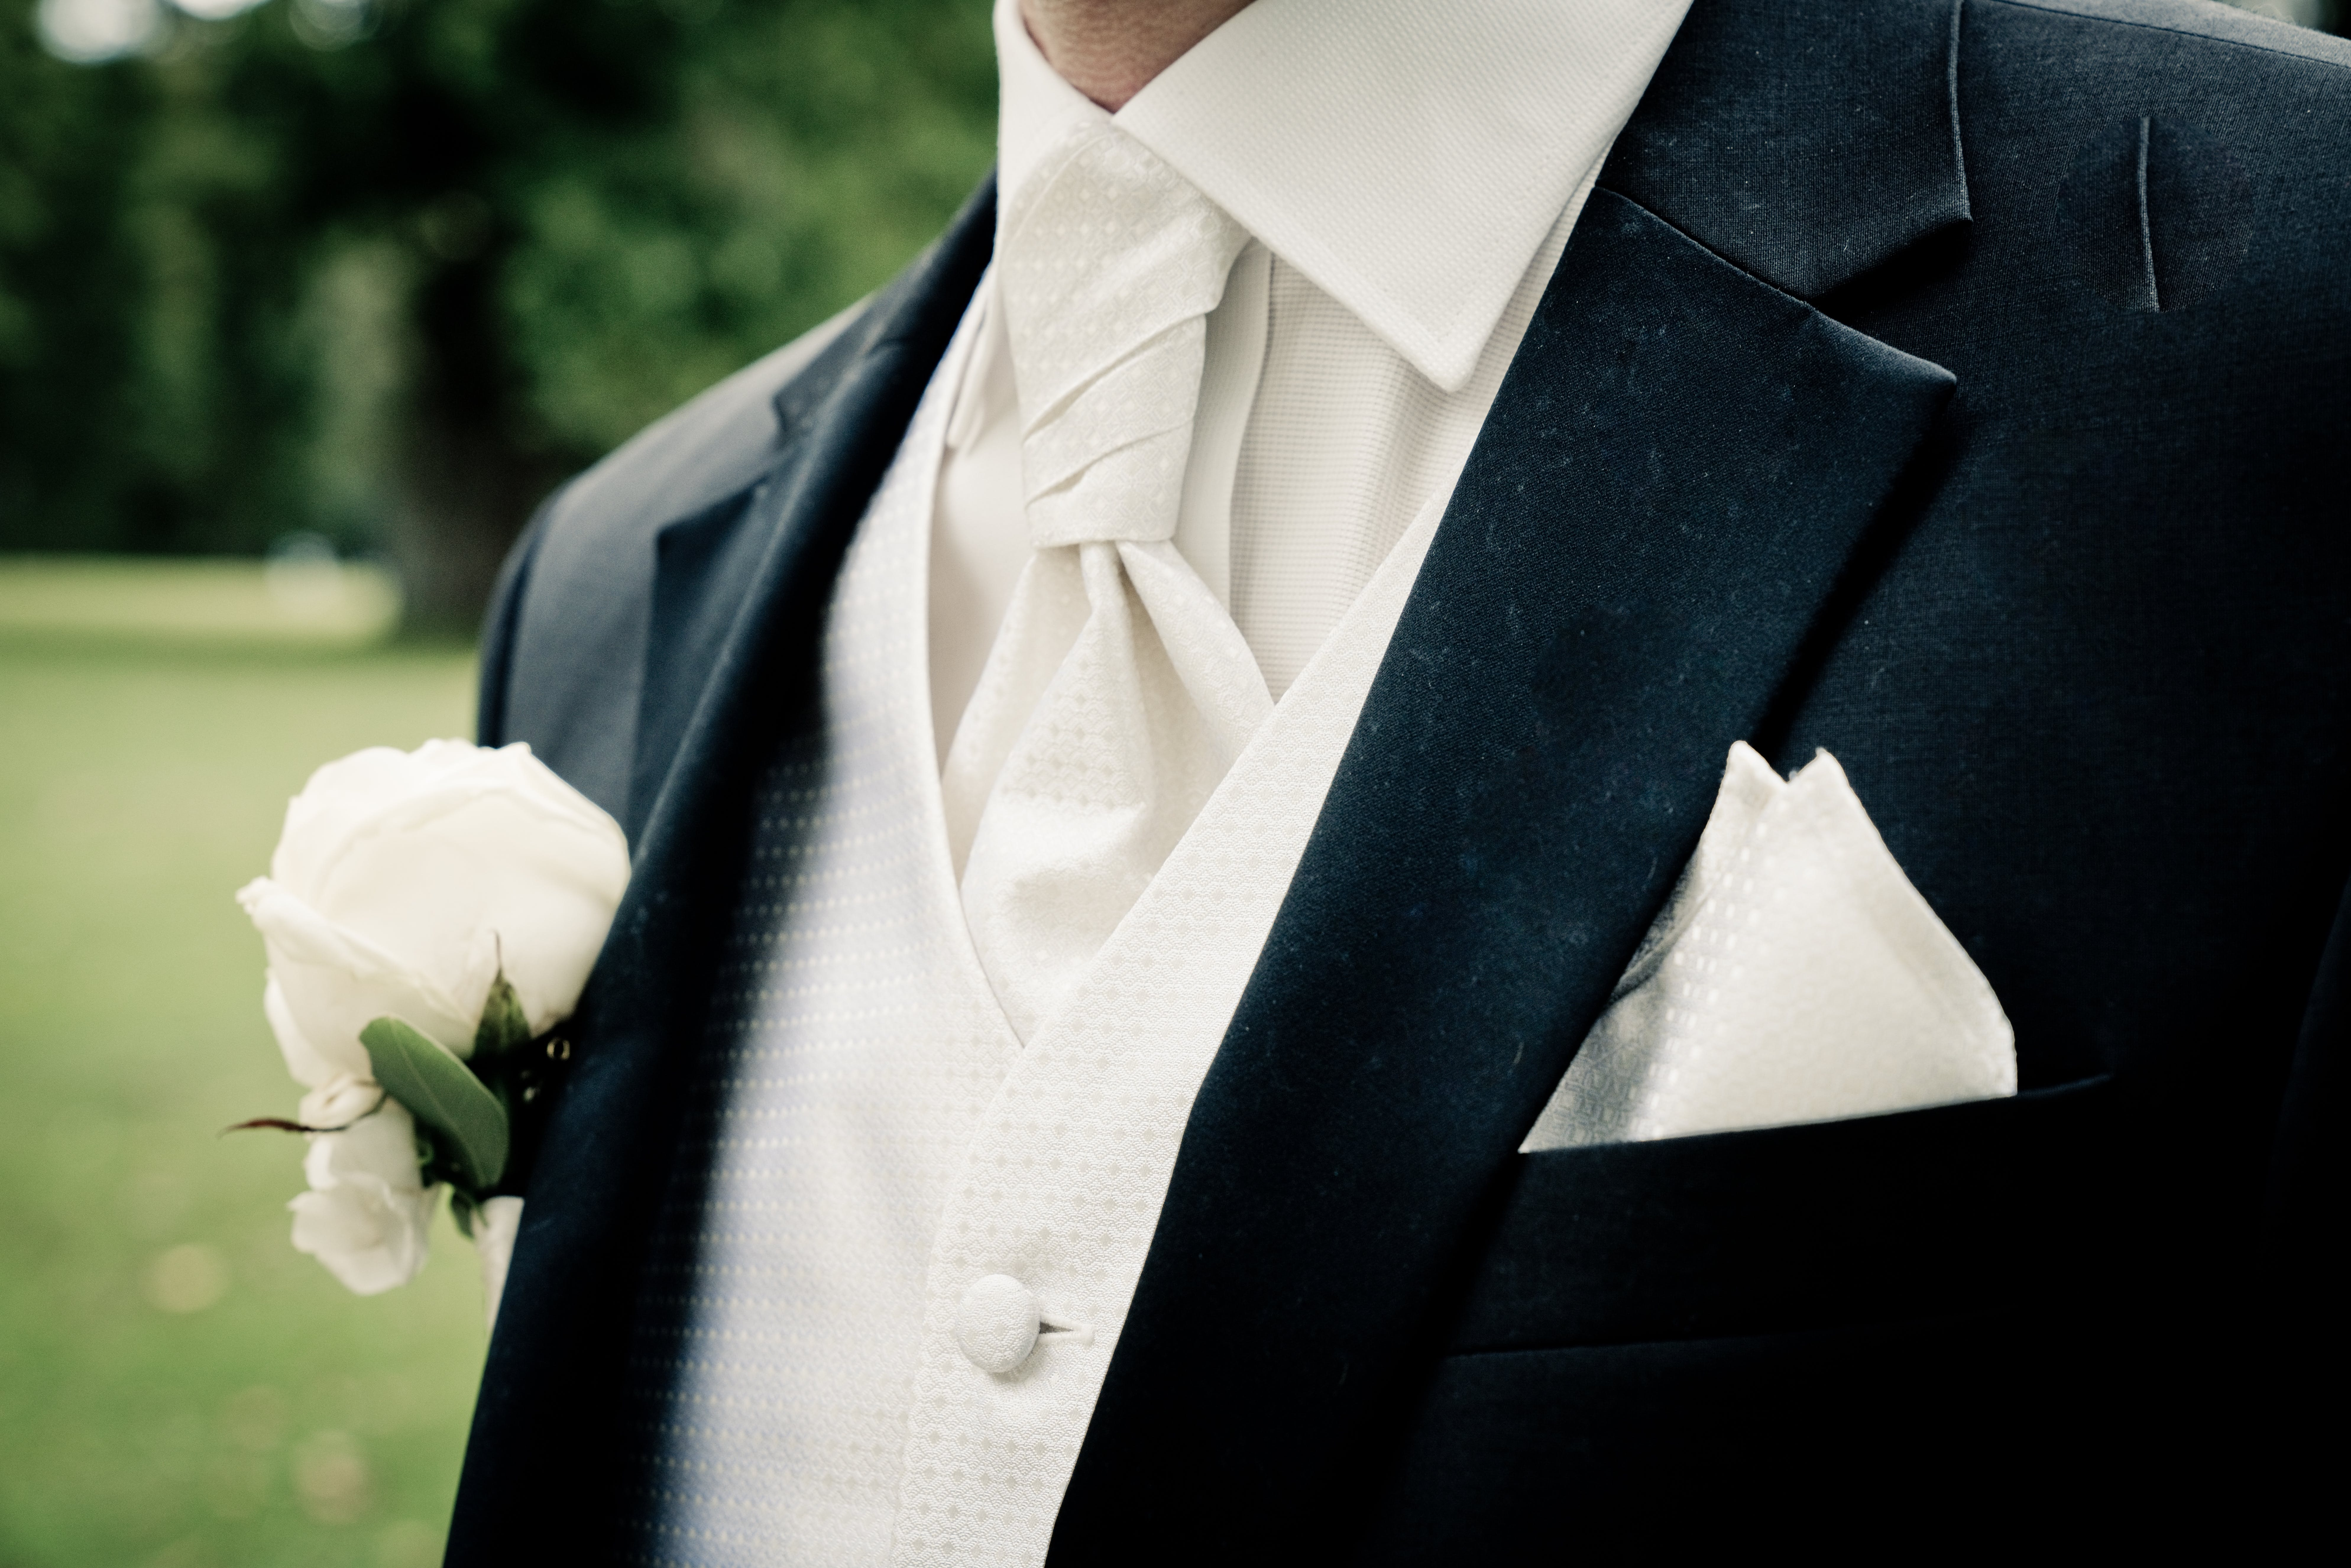 Man Wearing Suit in Close-up Photography